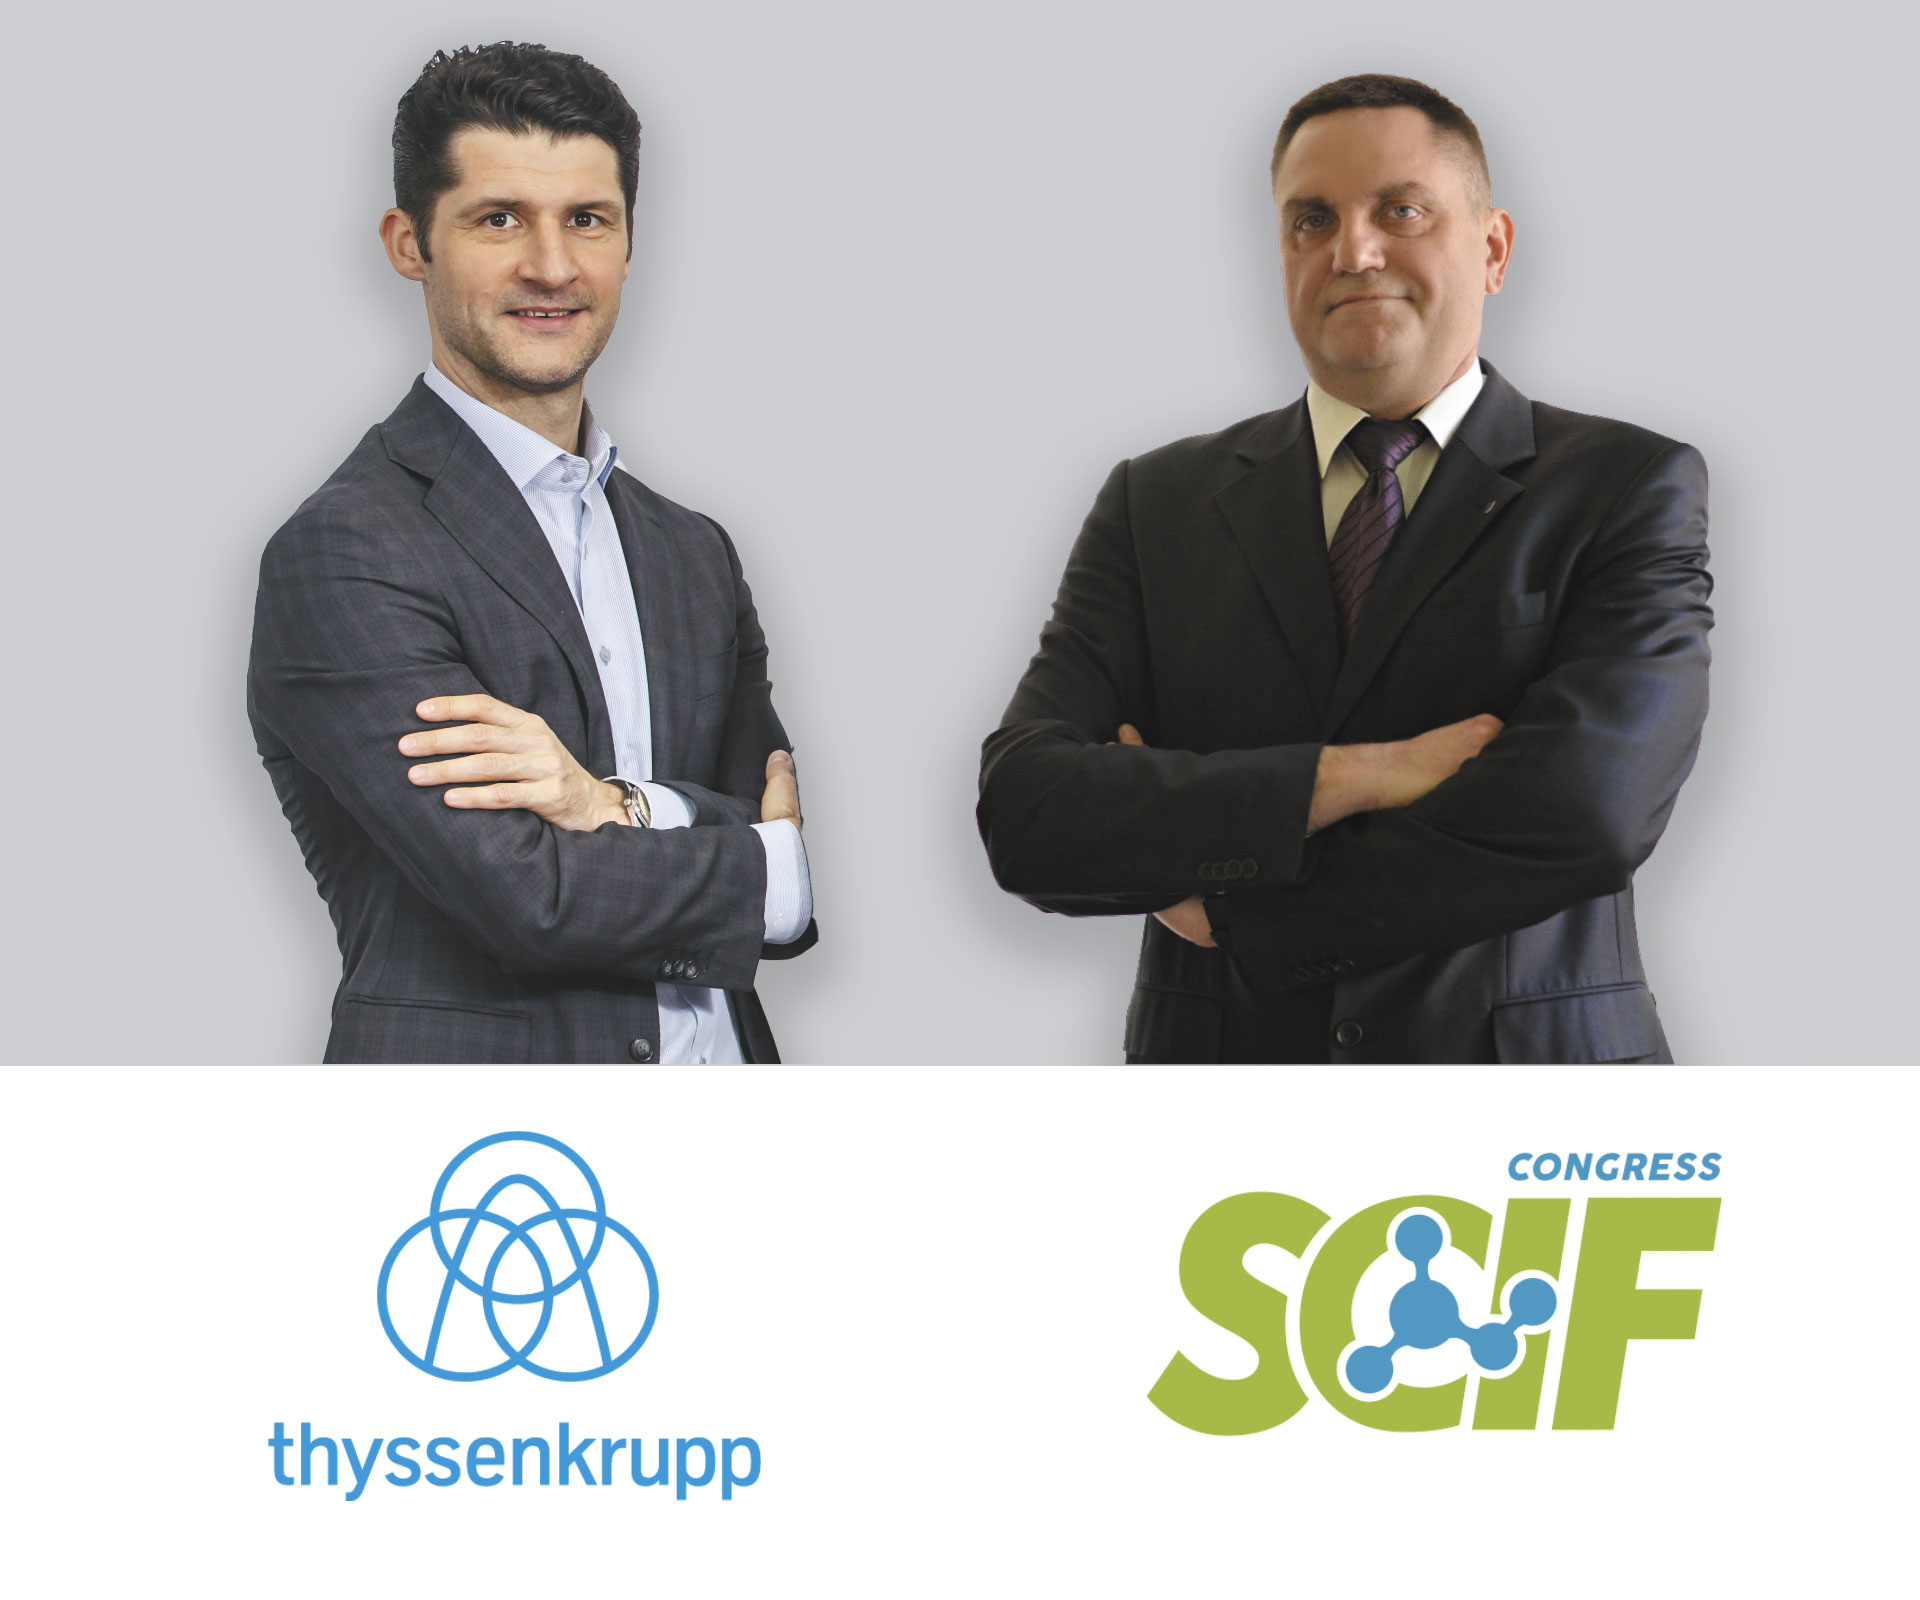 The Memorandum about cooperation was signed between SCIF Congress and thyssenkrupp Industrial Solutions representative office